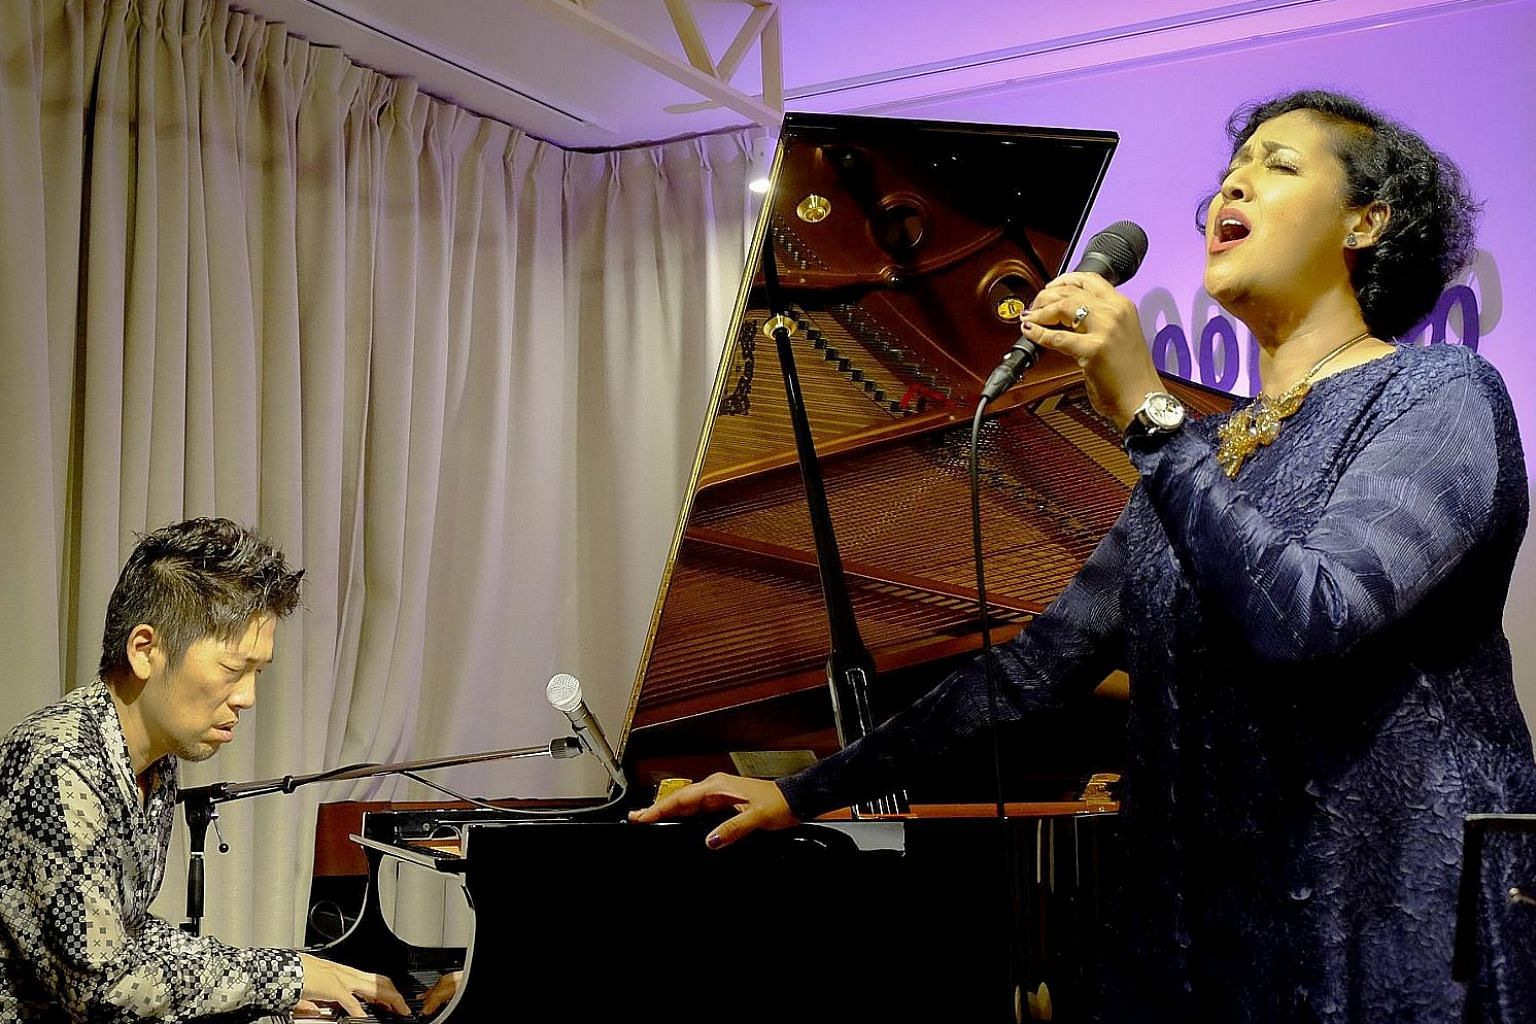 Singapore jazz singer Rani Singam had instant chemistry with Japanese jazz pianist Akira Ishii.